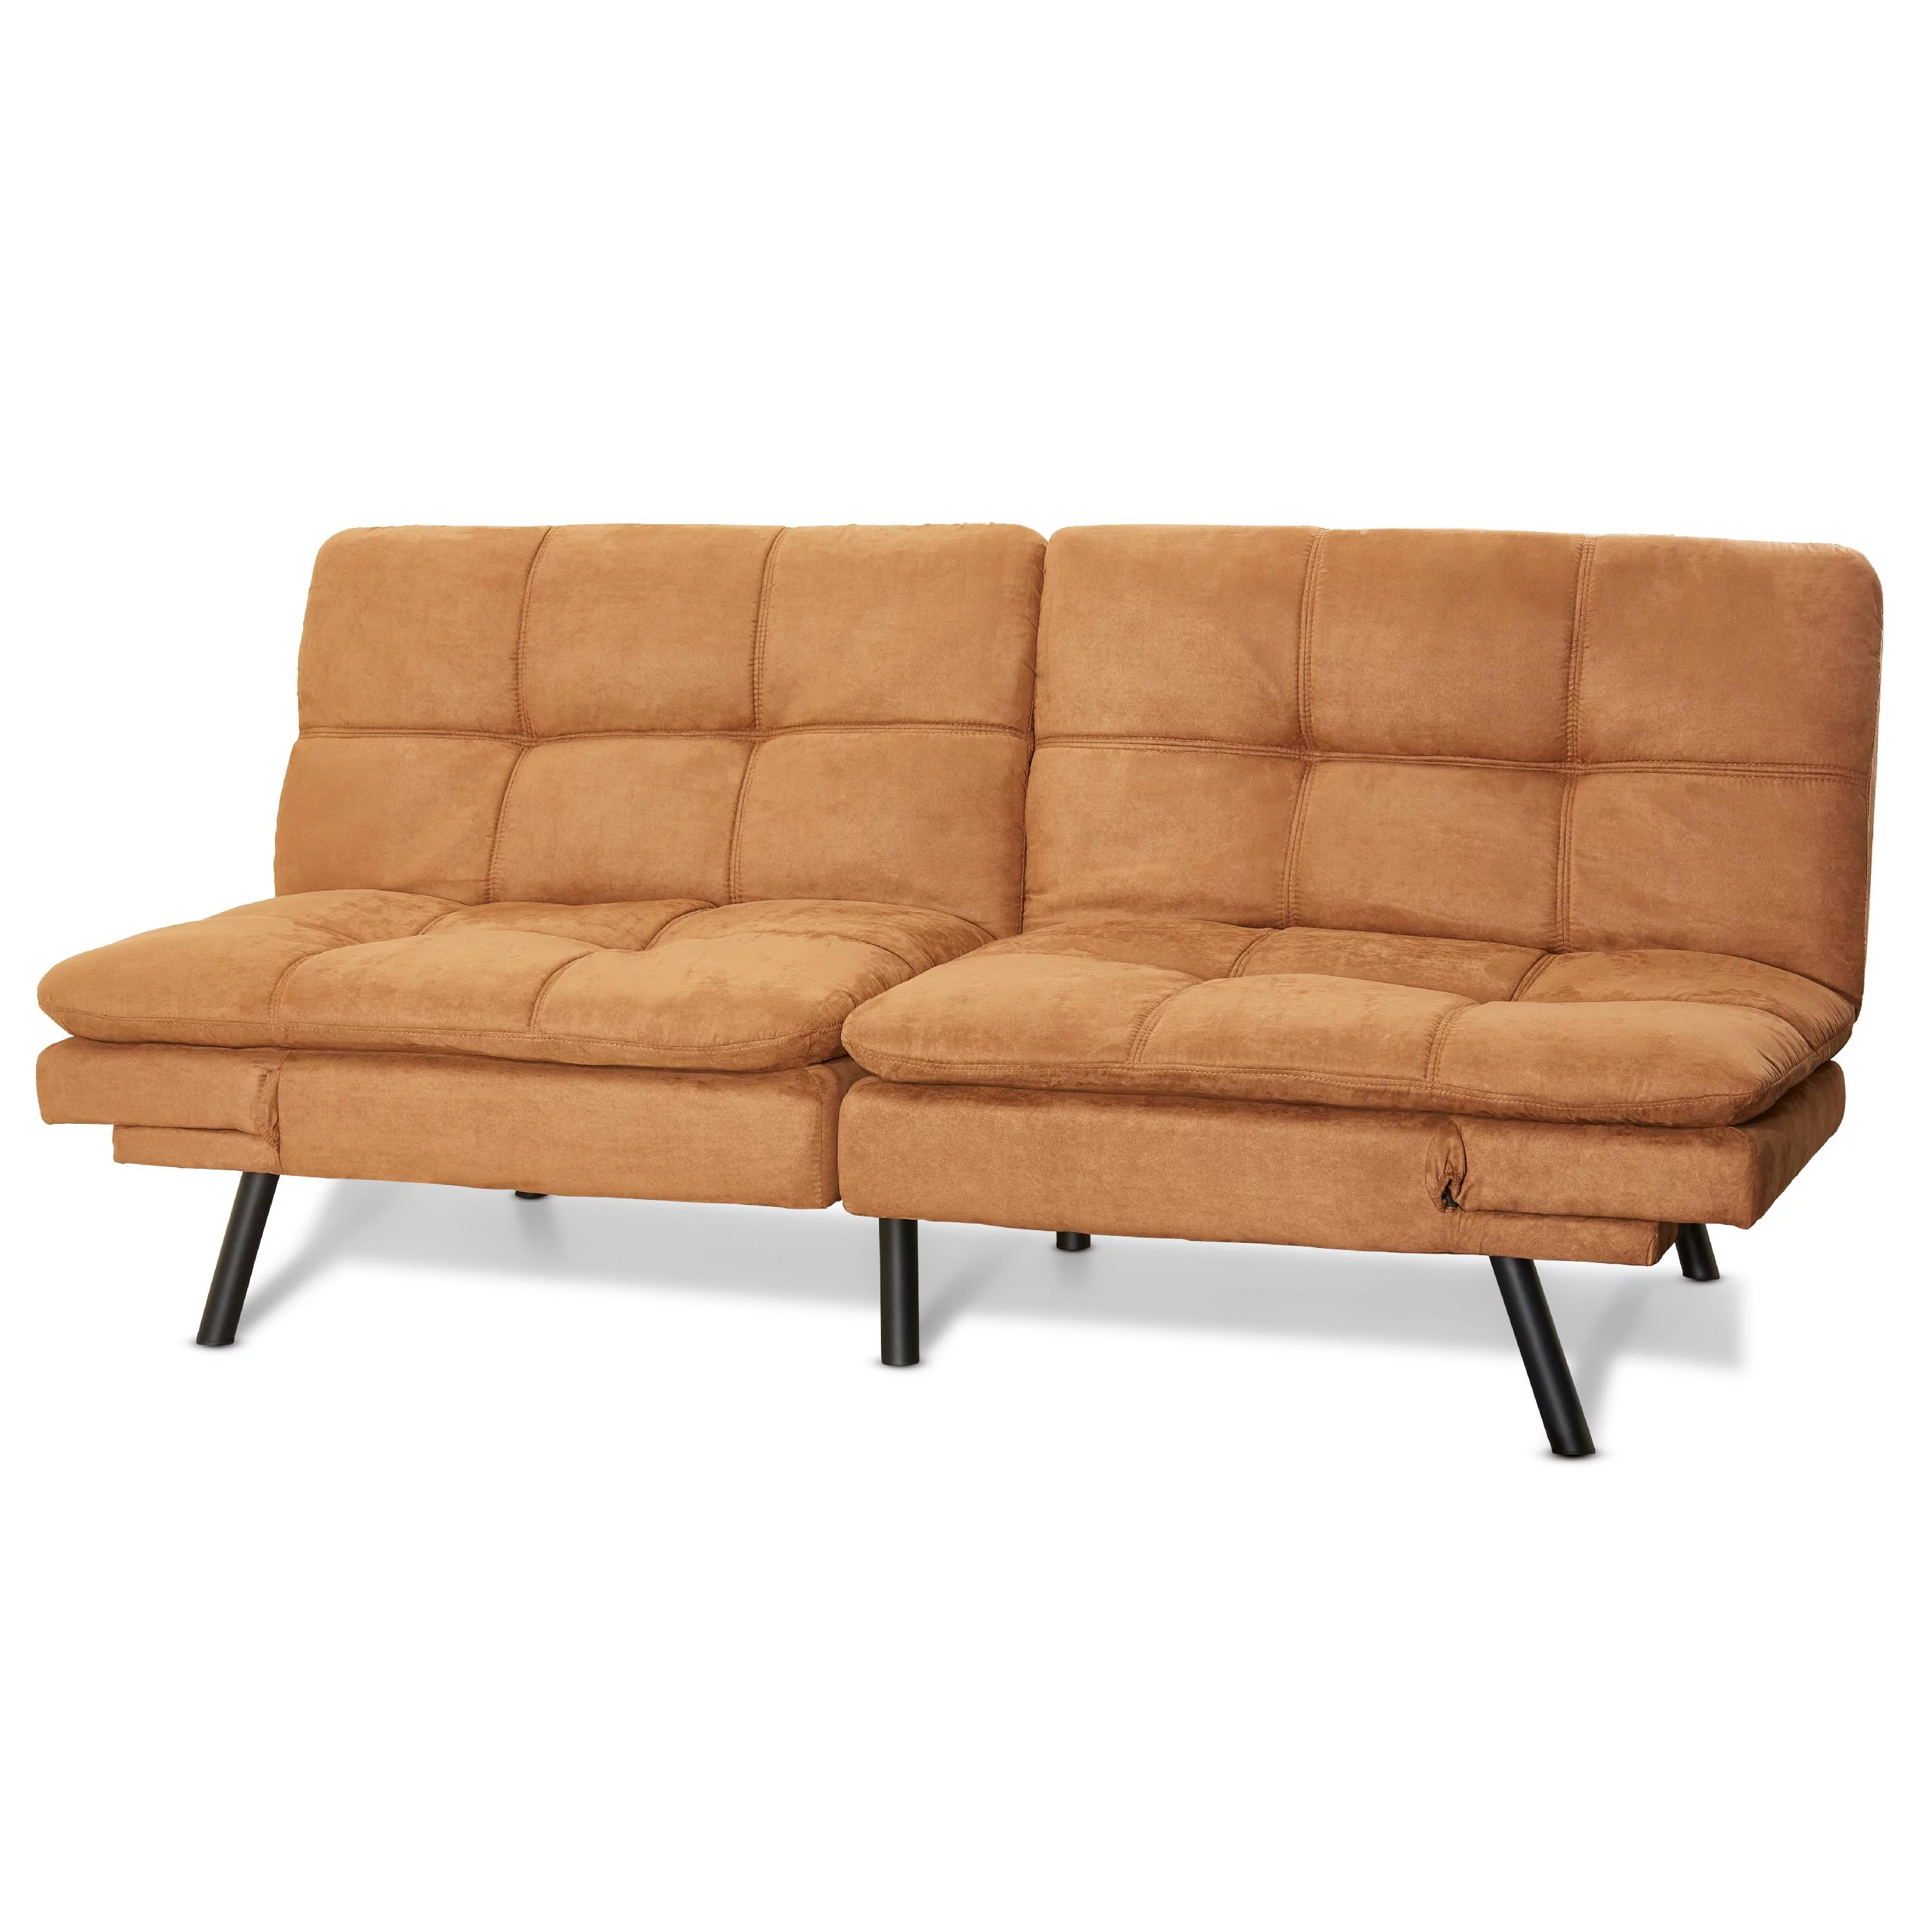 Details About Futon Couch Sleeper Sofa Loveseat Convertible Sectional Bed Chair Camel Swede